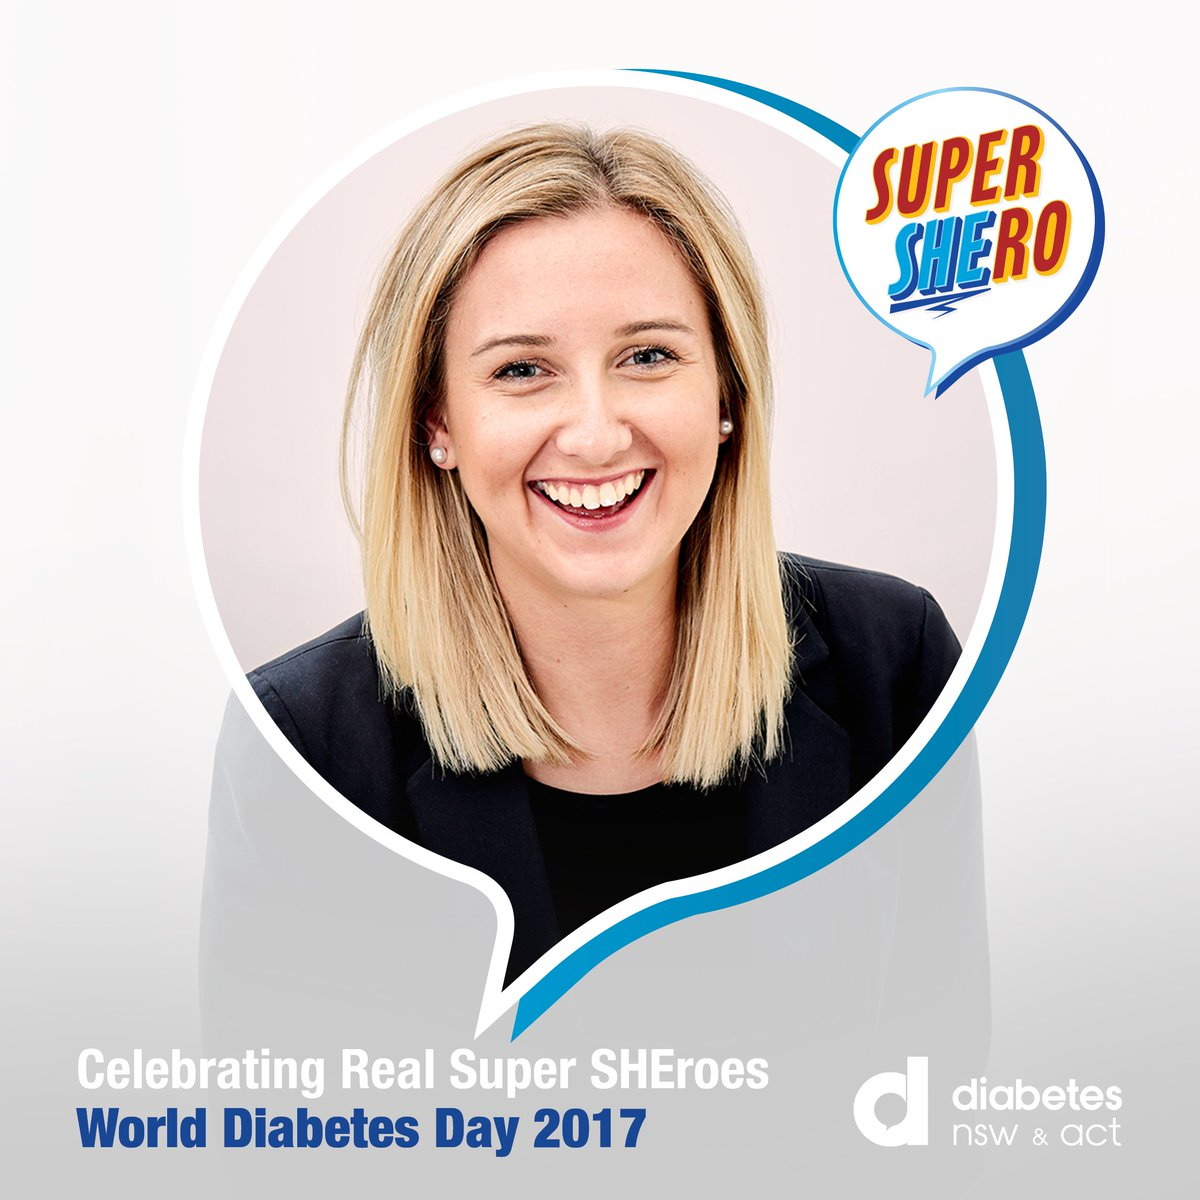 test Twitter Media - Diabetes NSW & ACT #SuperSHEro Tanya Ilkiw has been living with #type1 #diabetes for 14 years and is passionate about paediatric support for children living with diabetes. You can read about Tanya's experiences on The Leveled Life https://t.co/vU2sbDFK6v https://t.co/JHpKSWZMAC